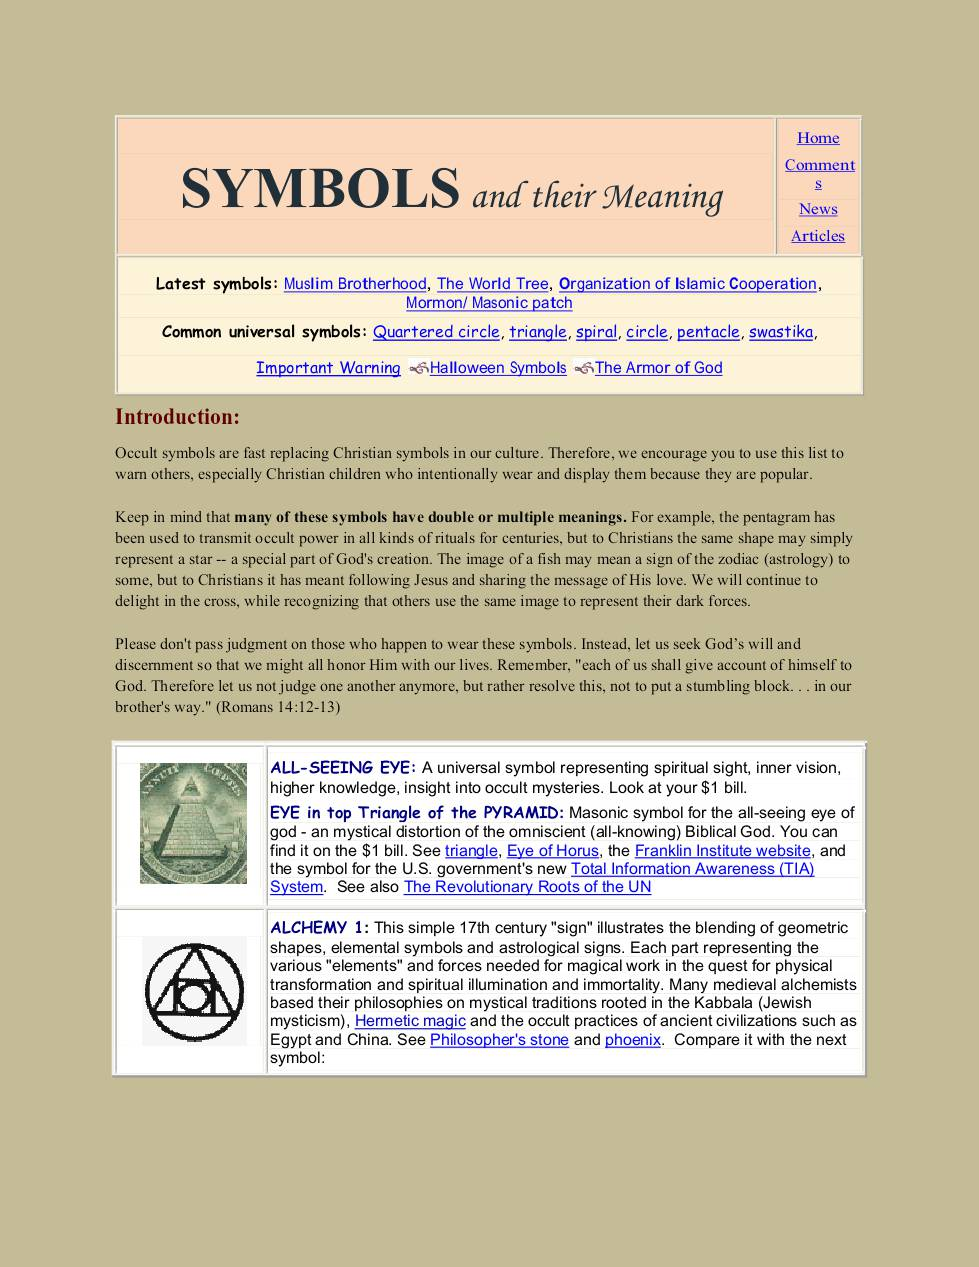 Symbols and their meaning dochub biocorpaavc